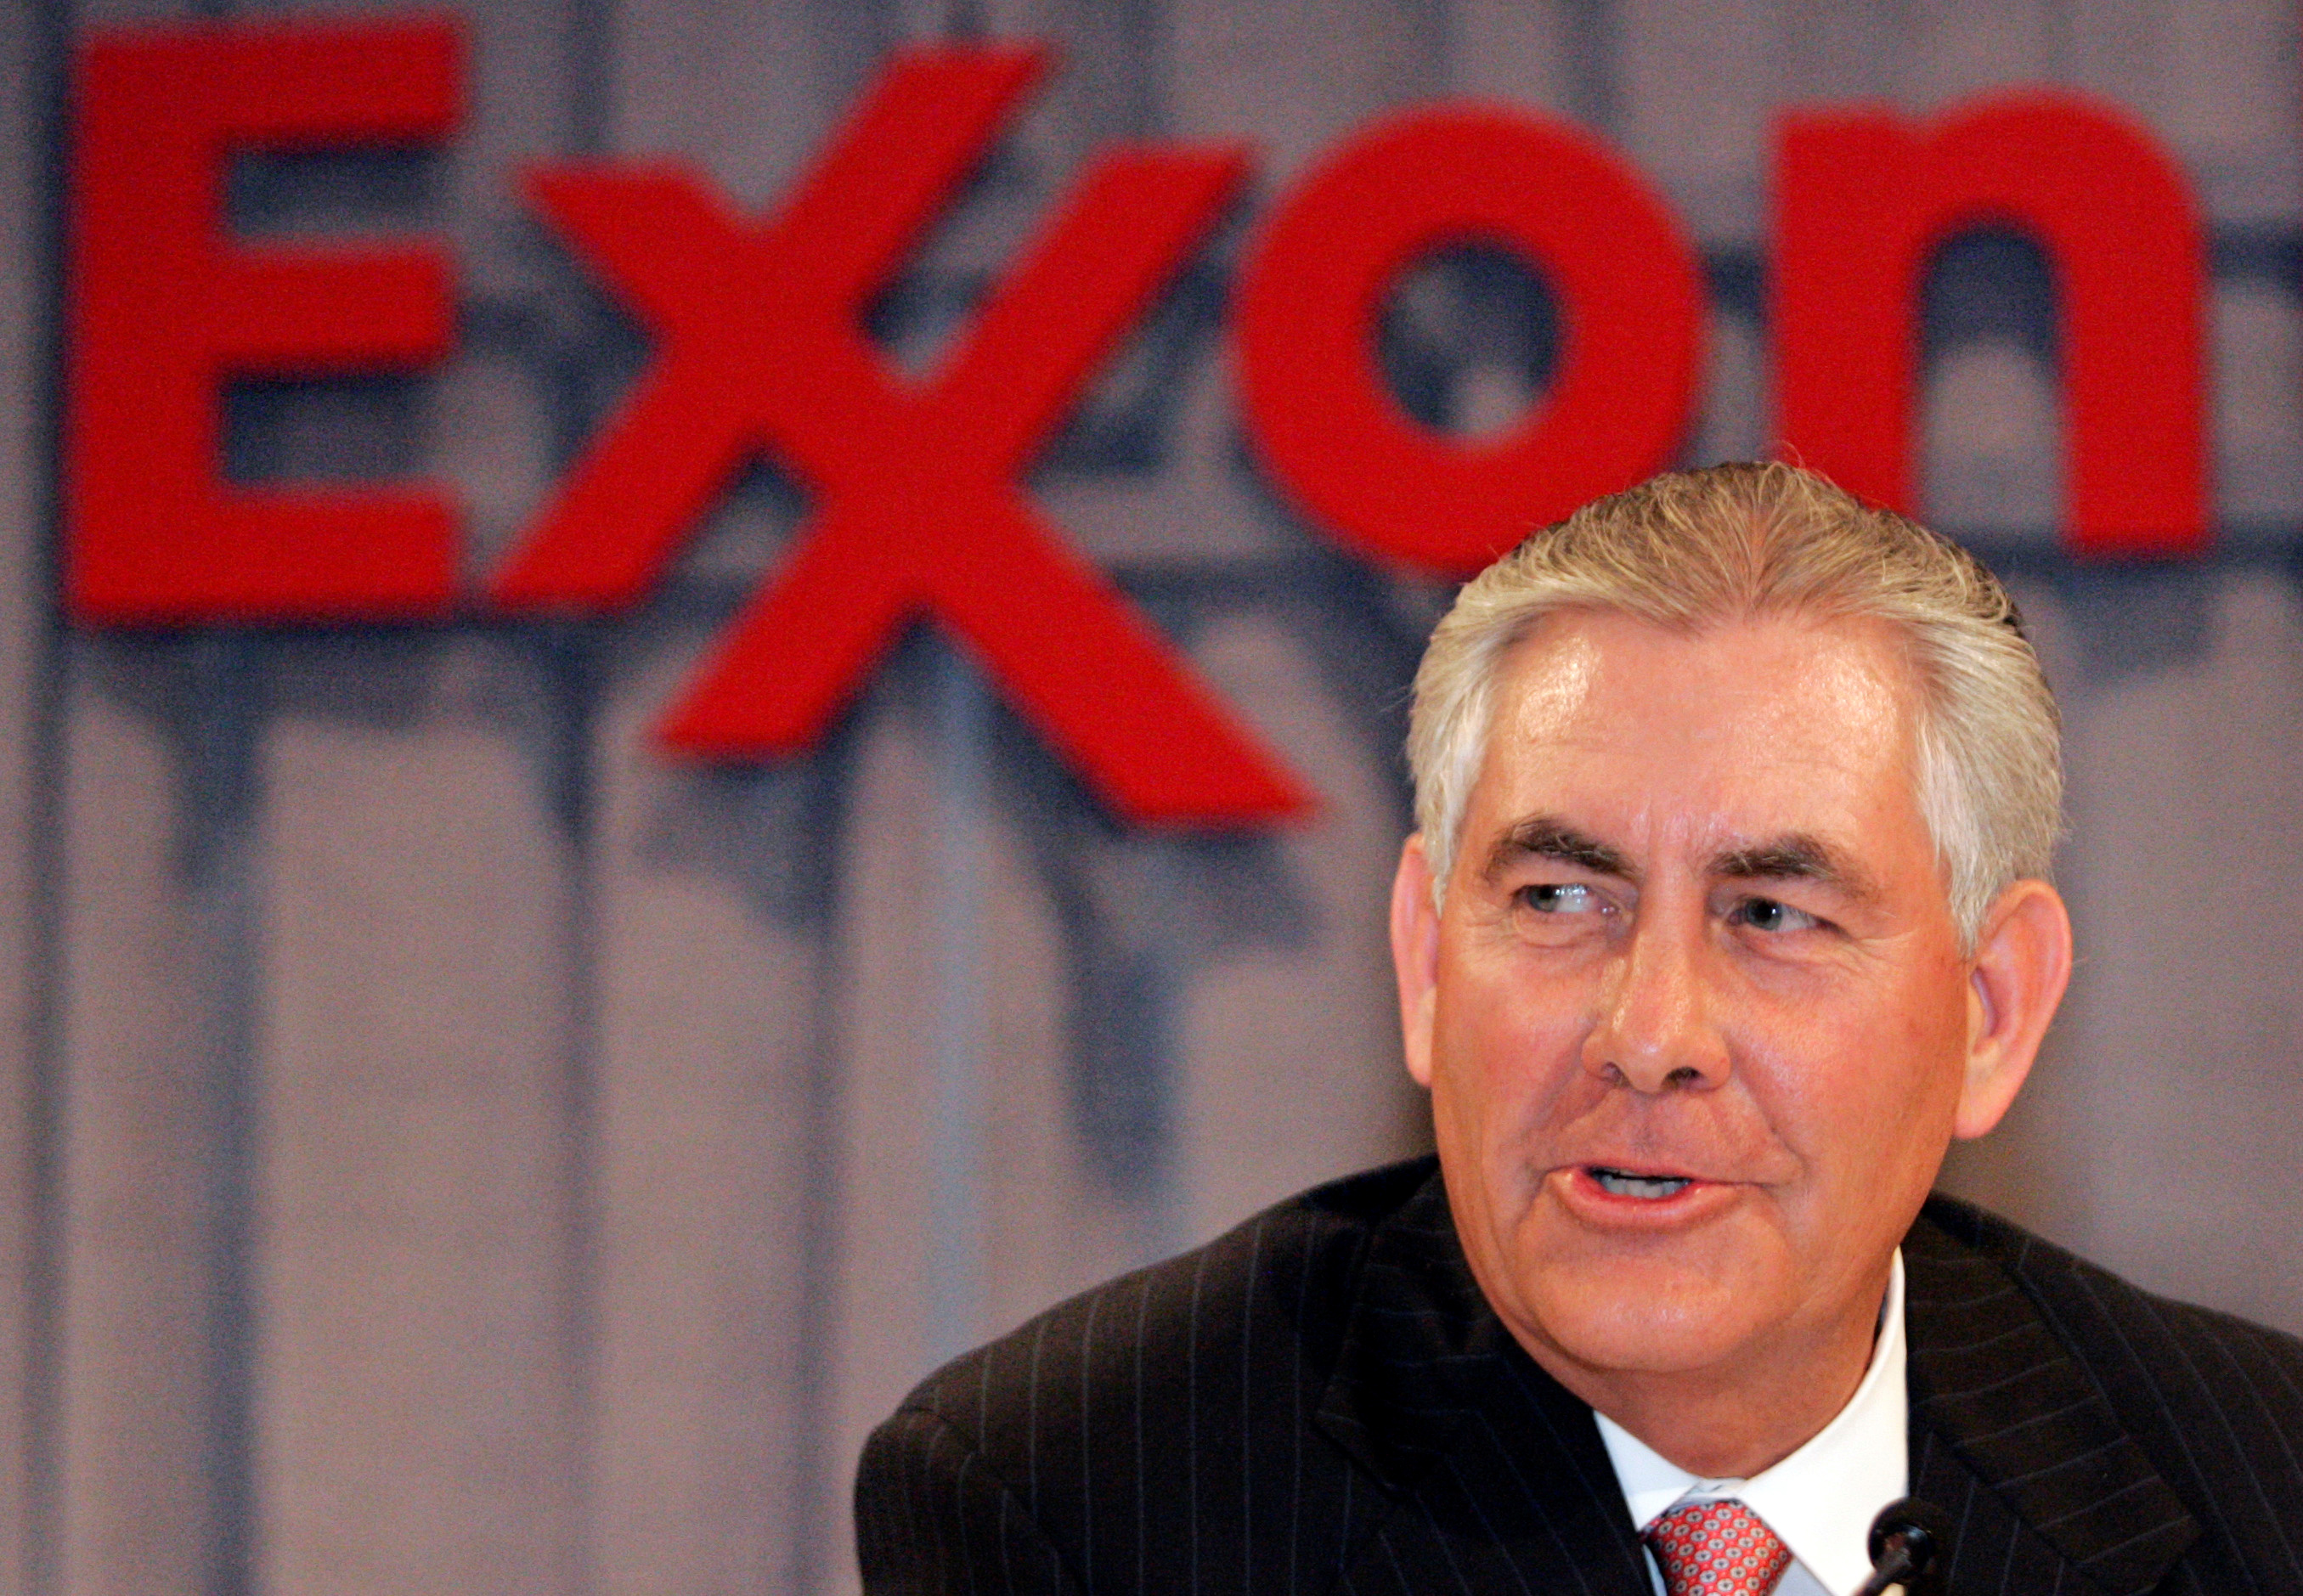 FILE PHOTO - Chairman and chief executive officer Rex W. Tillerson speaks at a news conference following the Exxon Mobil Corporation Shareholders Meeting in Dallas, Texas, May 28, 2008. REUTERS/Mike Stone/File Photo - RTX2UQYG